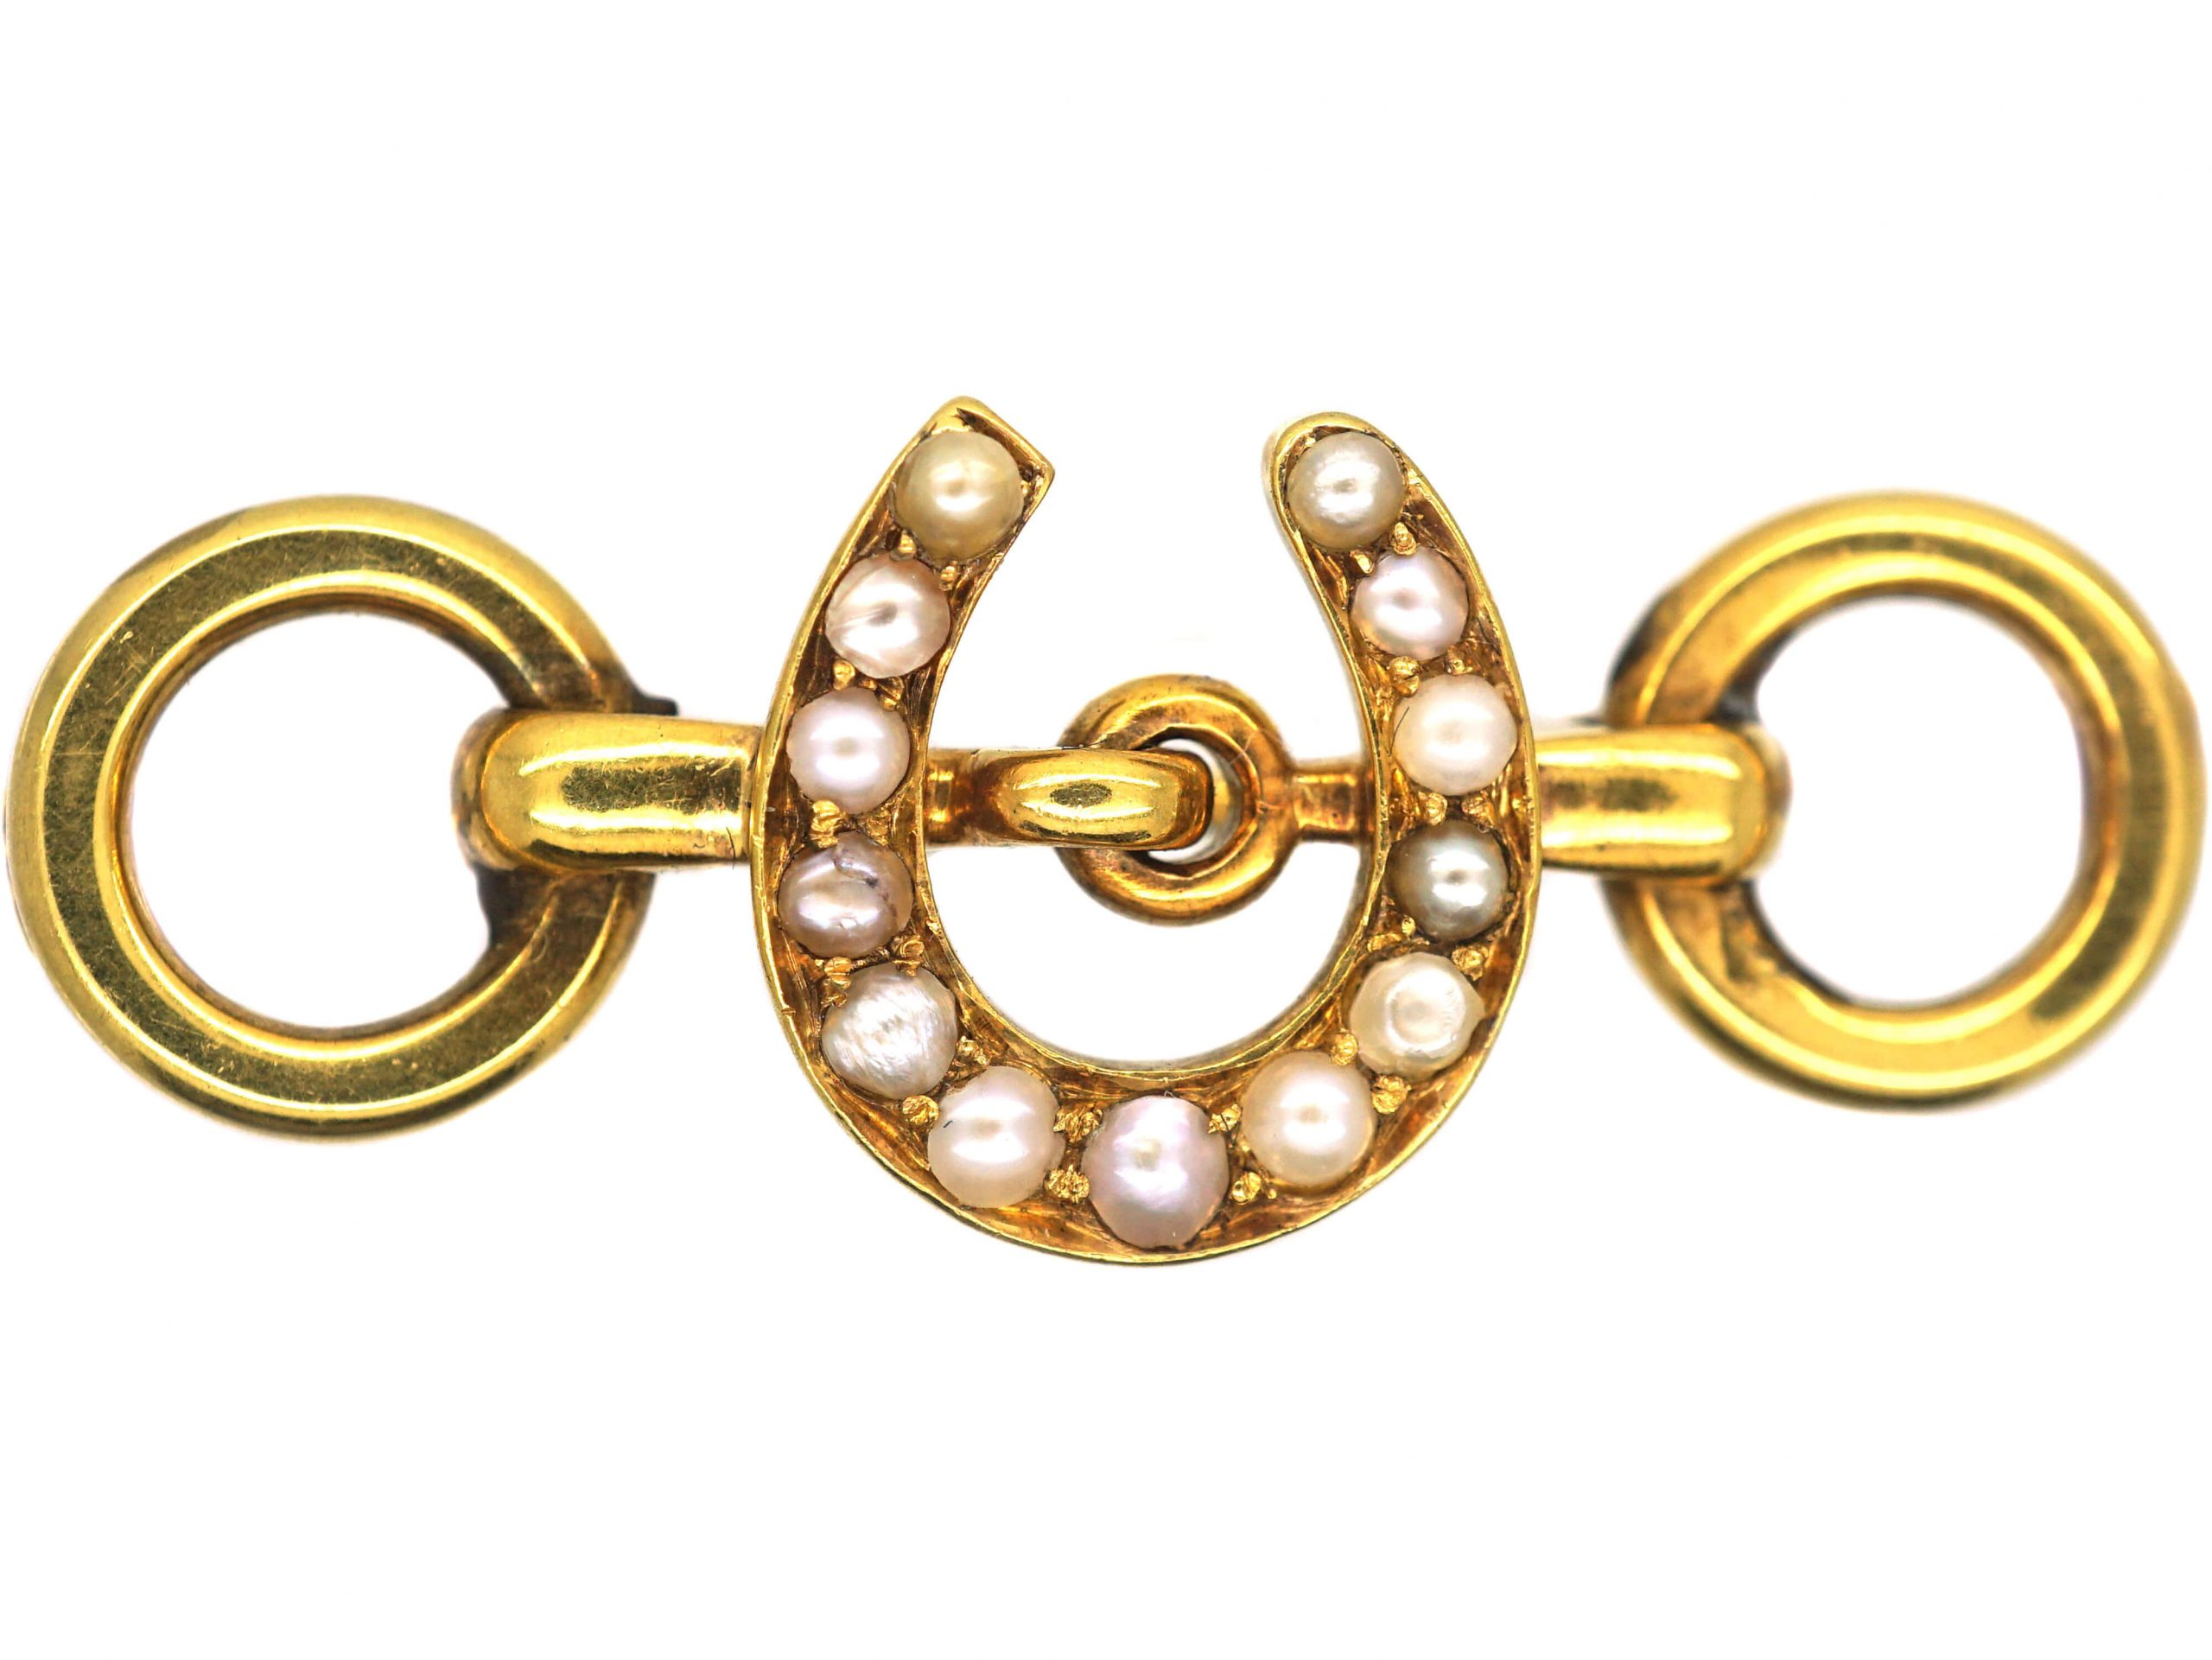 Victorian 18ct Gold Horseshoe and Bit Brooch set with Natural Split Pearls